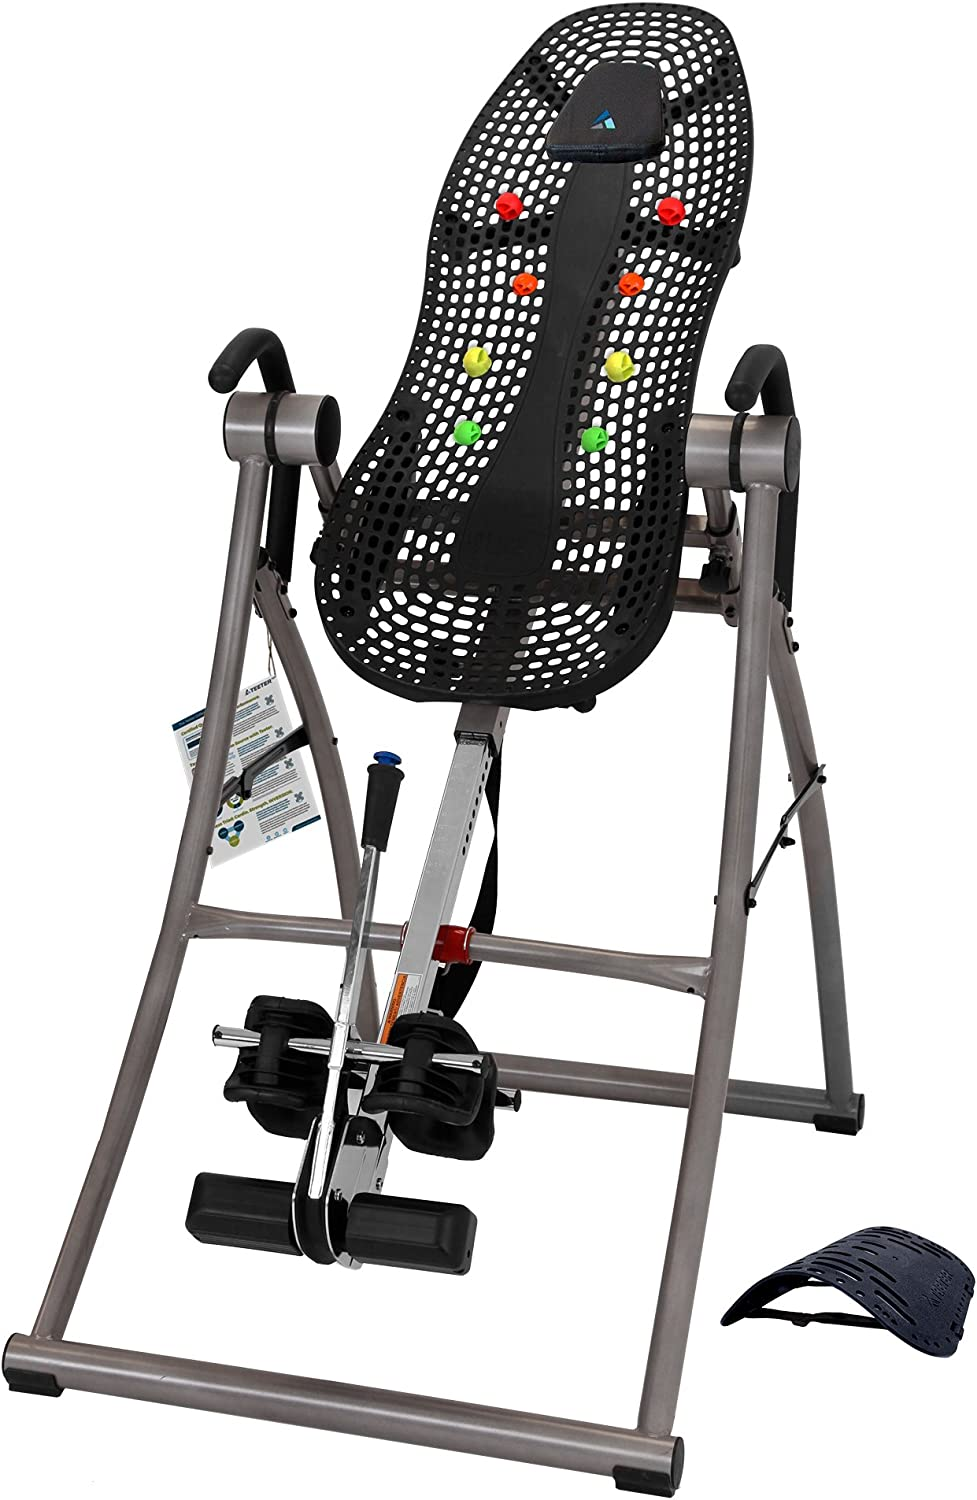 Teeter Contour L5 Inversion Table, Deluxe Easy-to-Reach Ankle Lock, Back Pain Relief, FDA-Registered